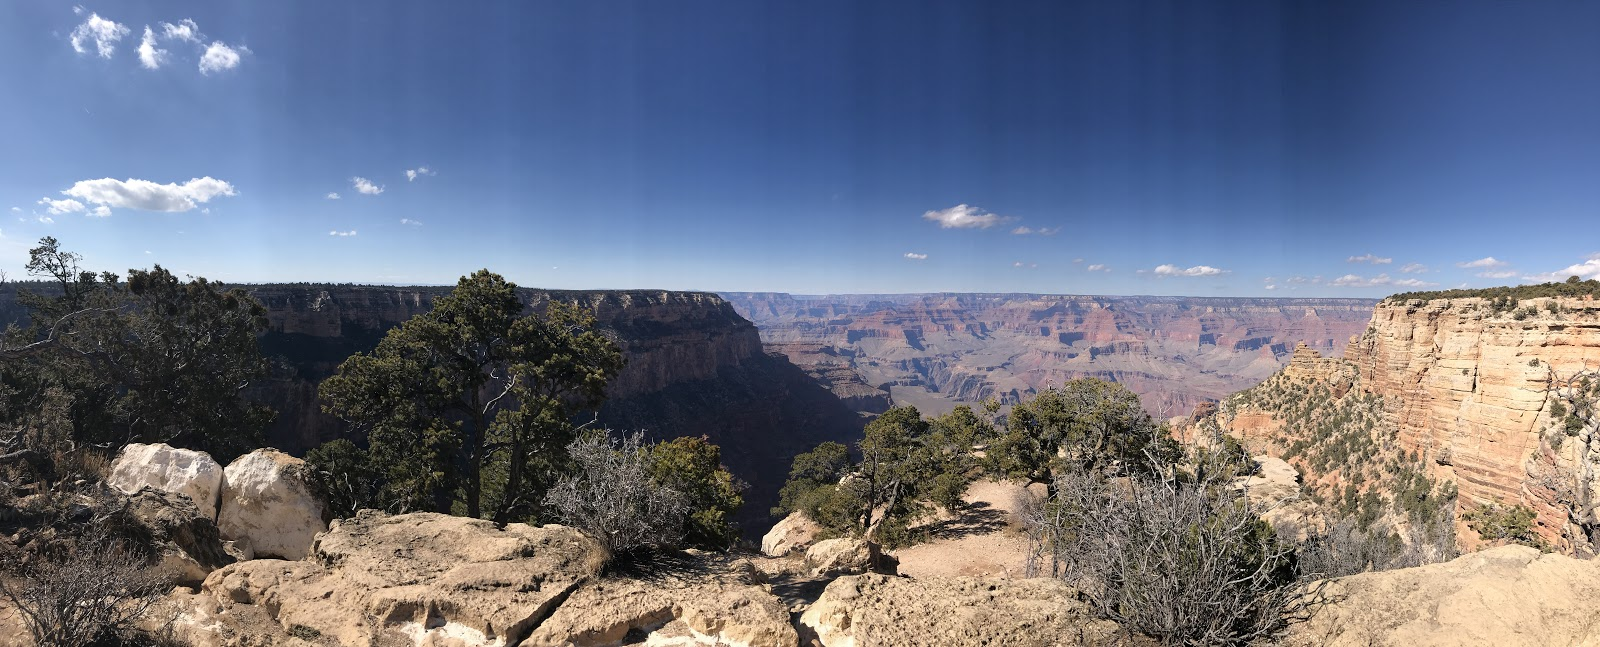 panoramic view of the grand canyon red rock and trees in foreground on a clear sunny day